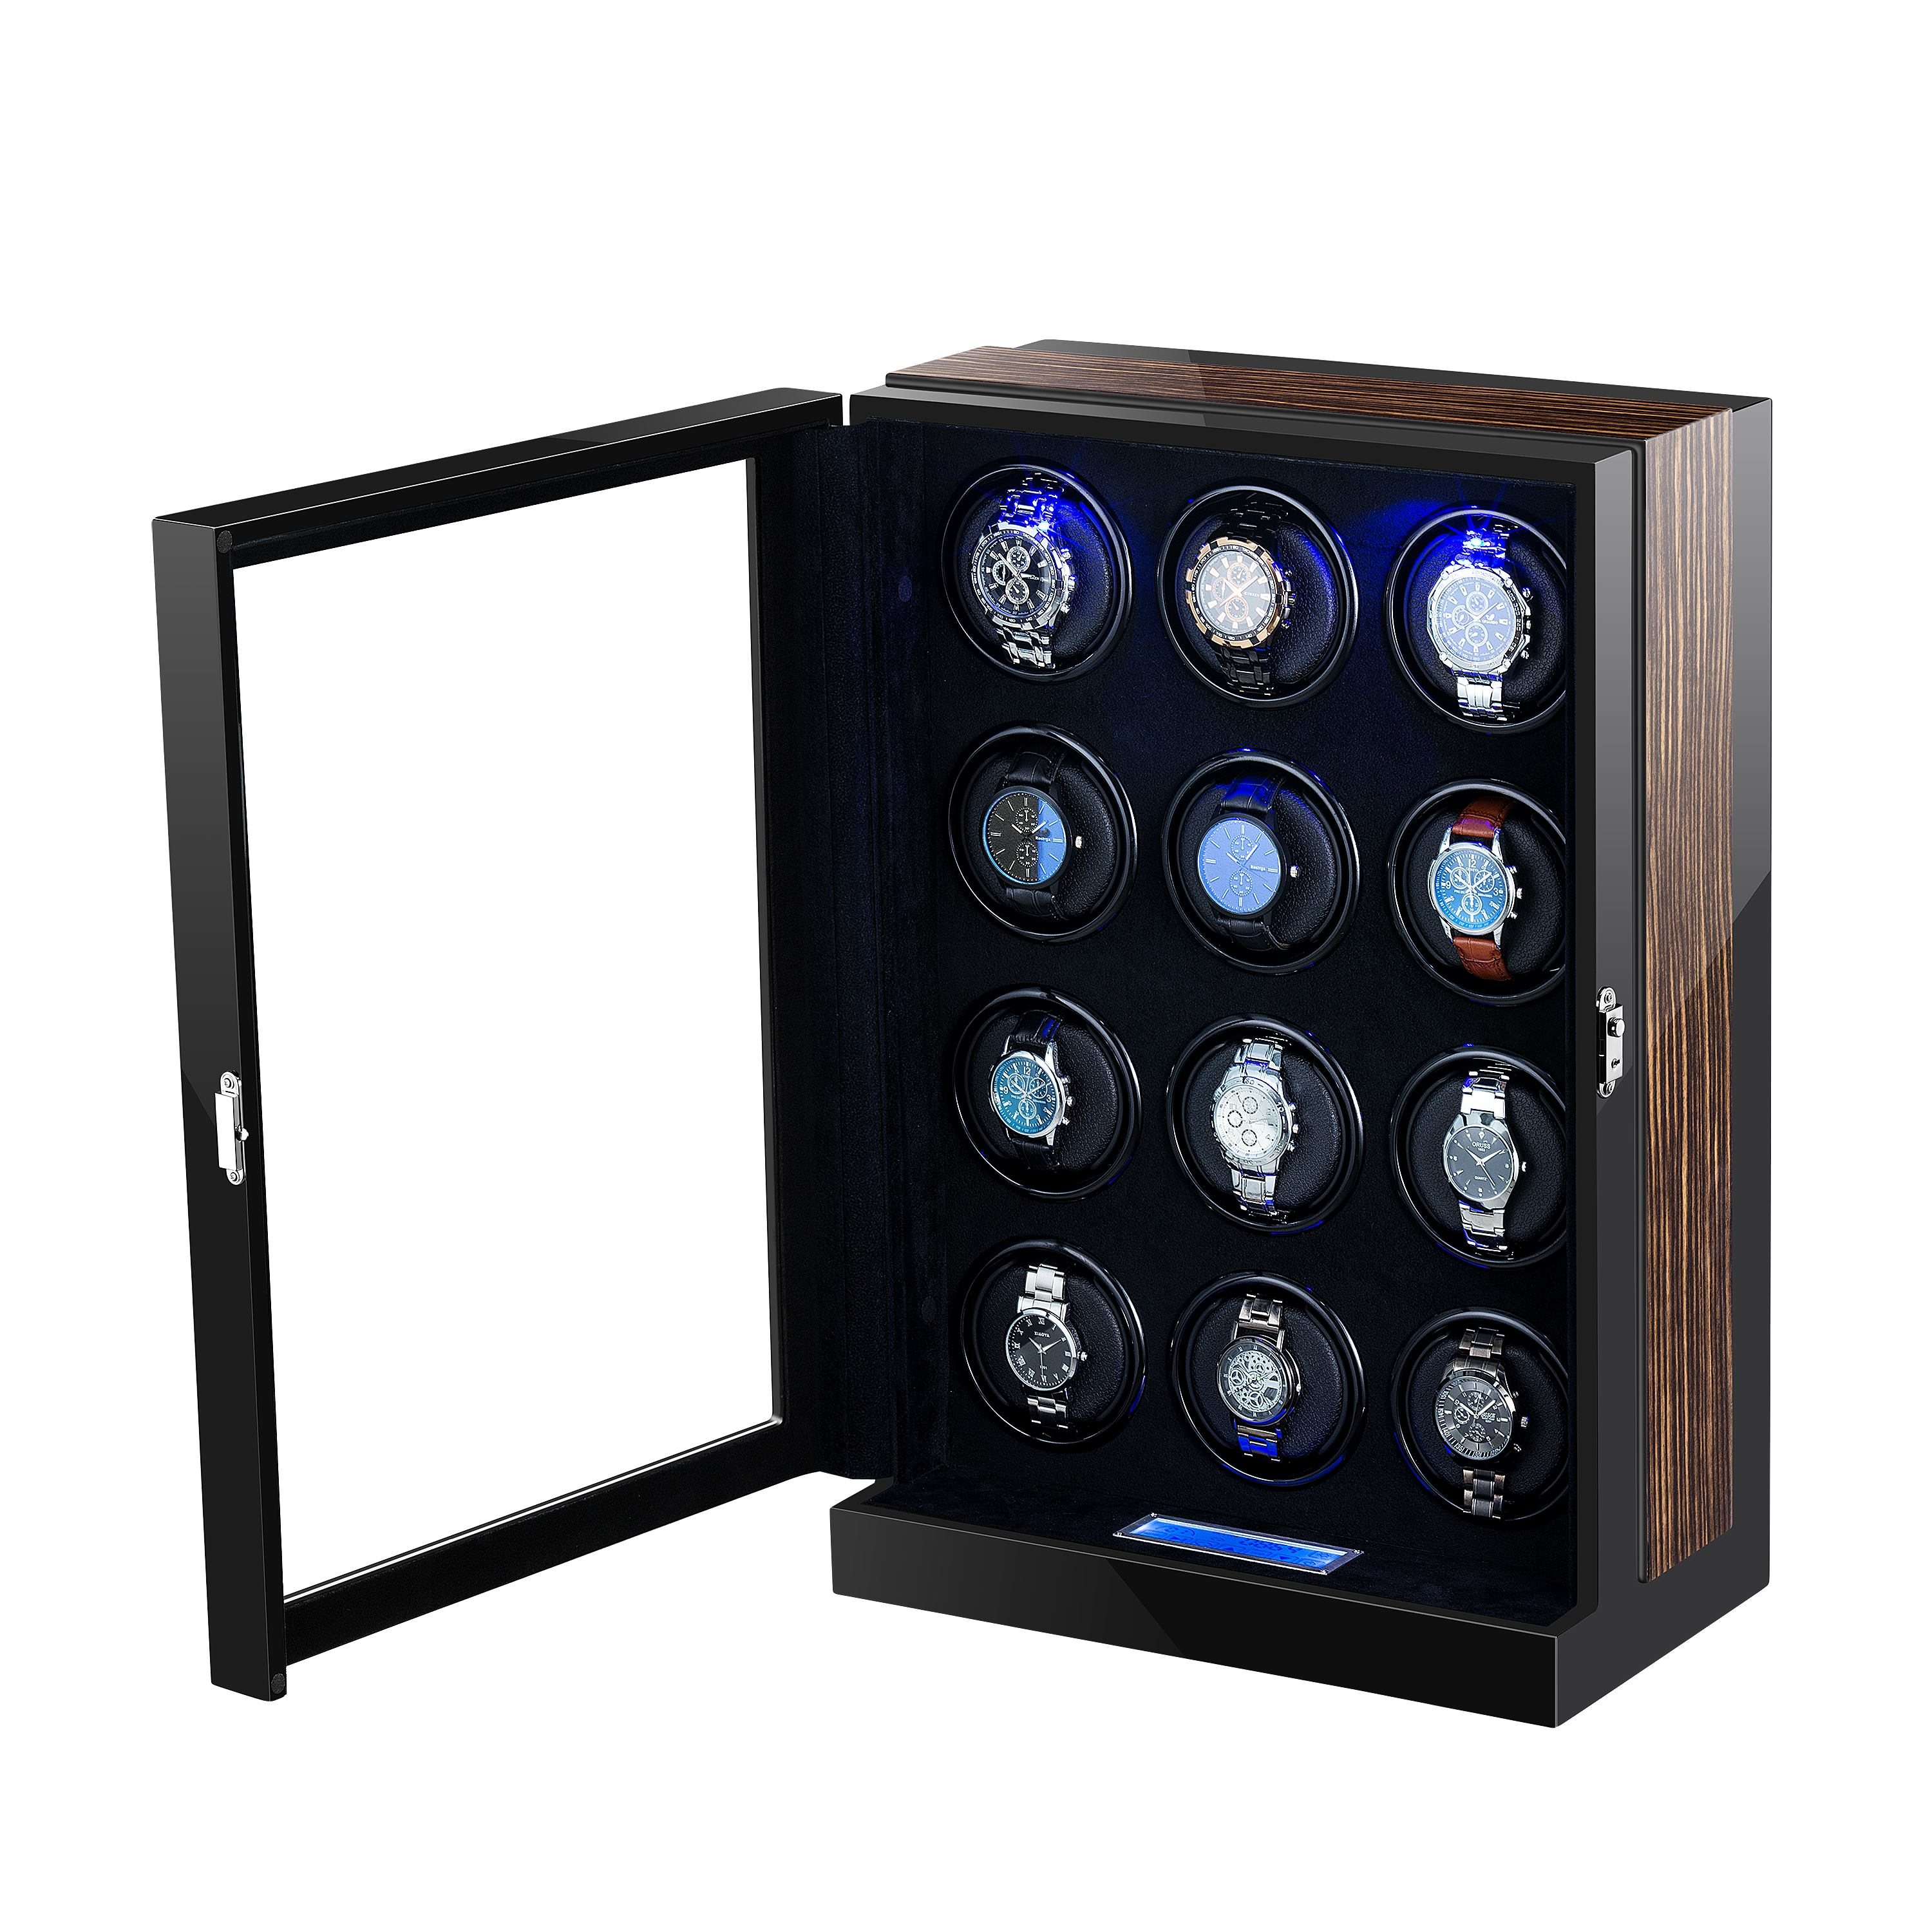 China automatic watch winder box 12 rotors watch winder with touch screen and two led lights